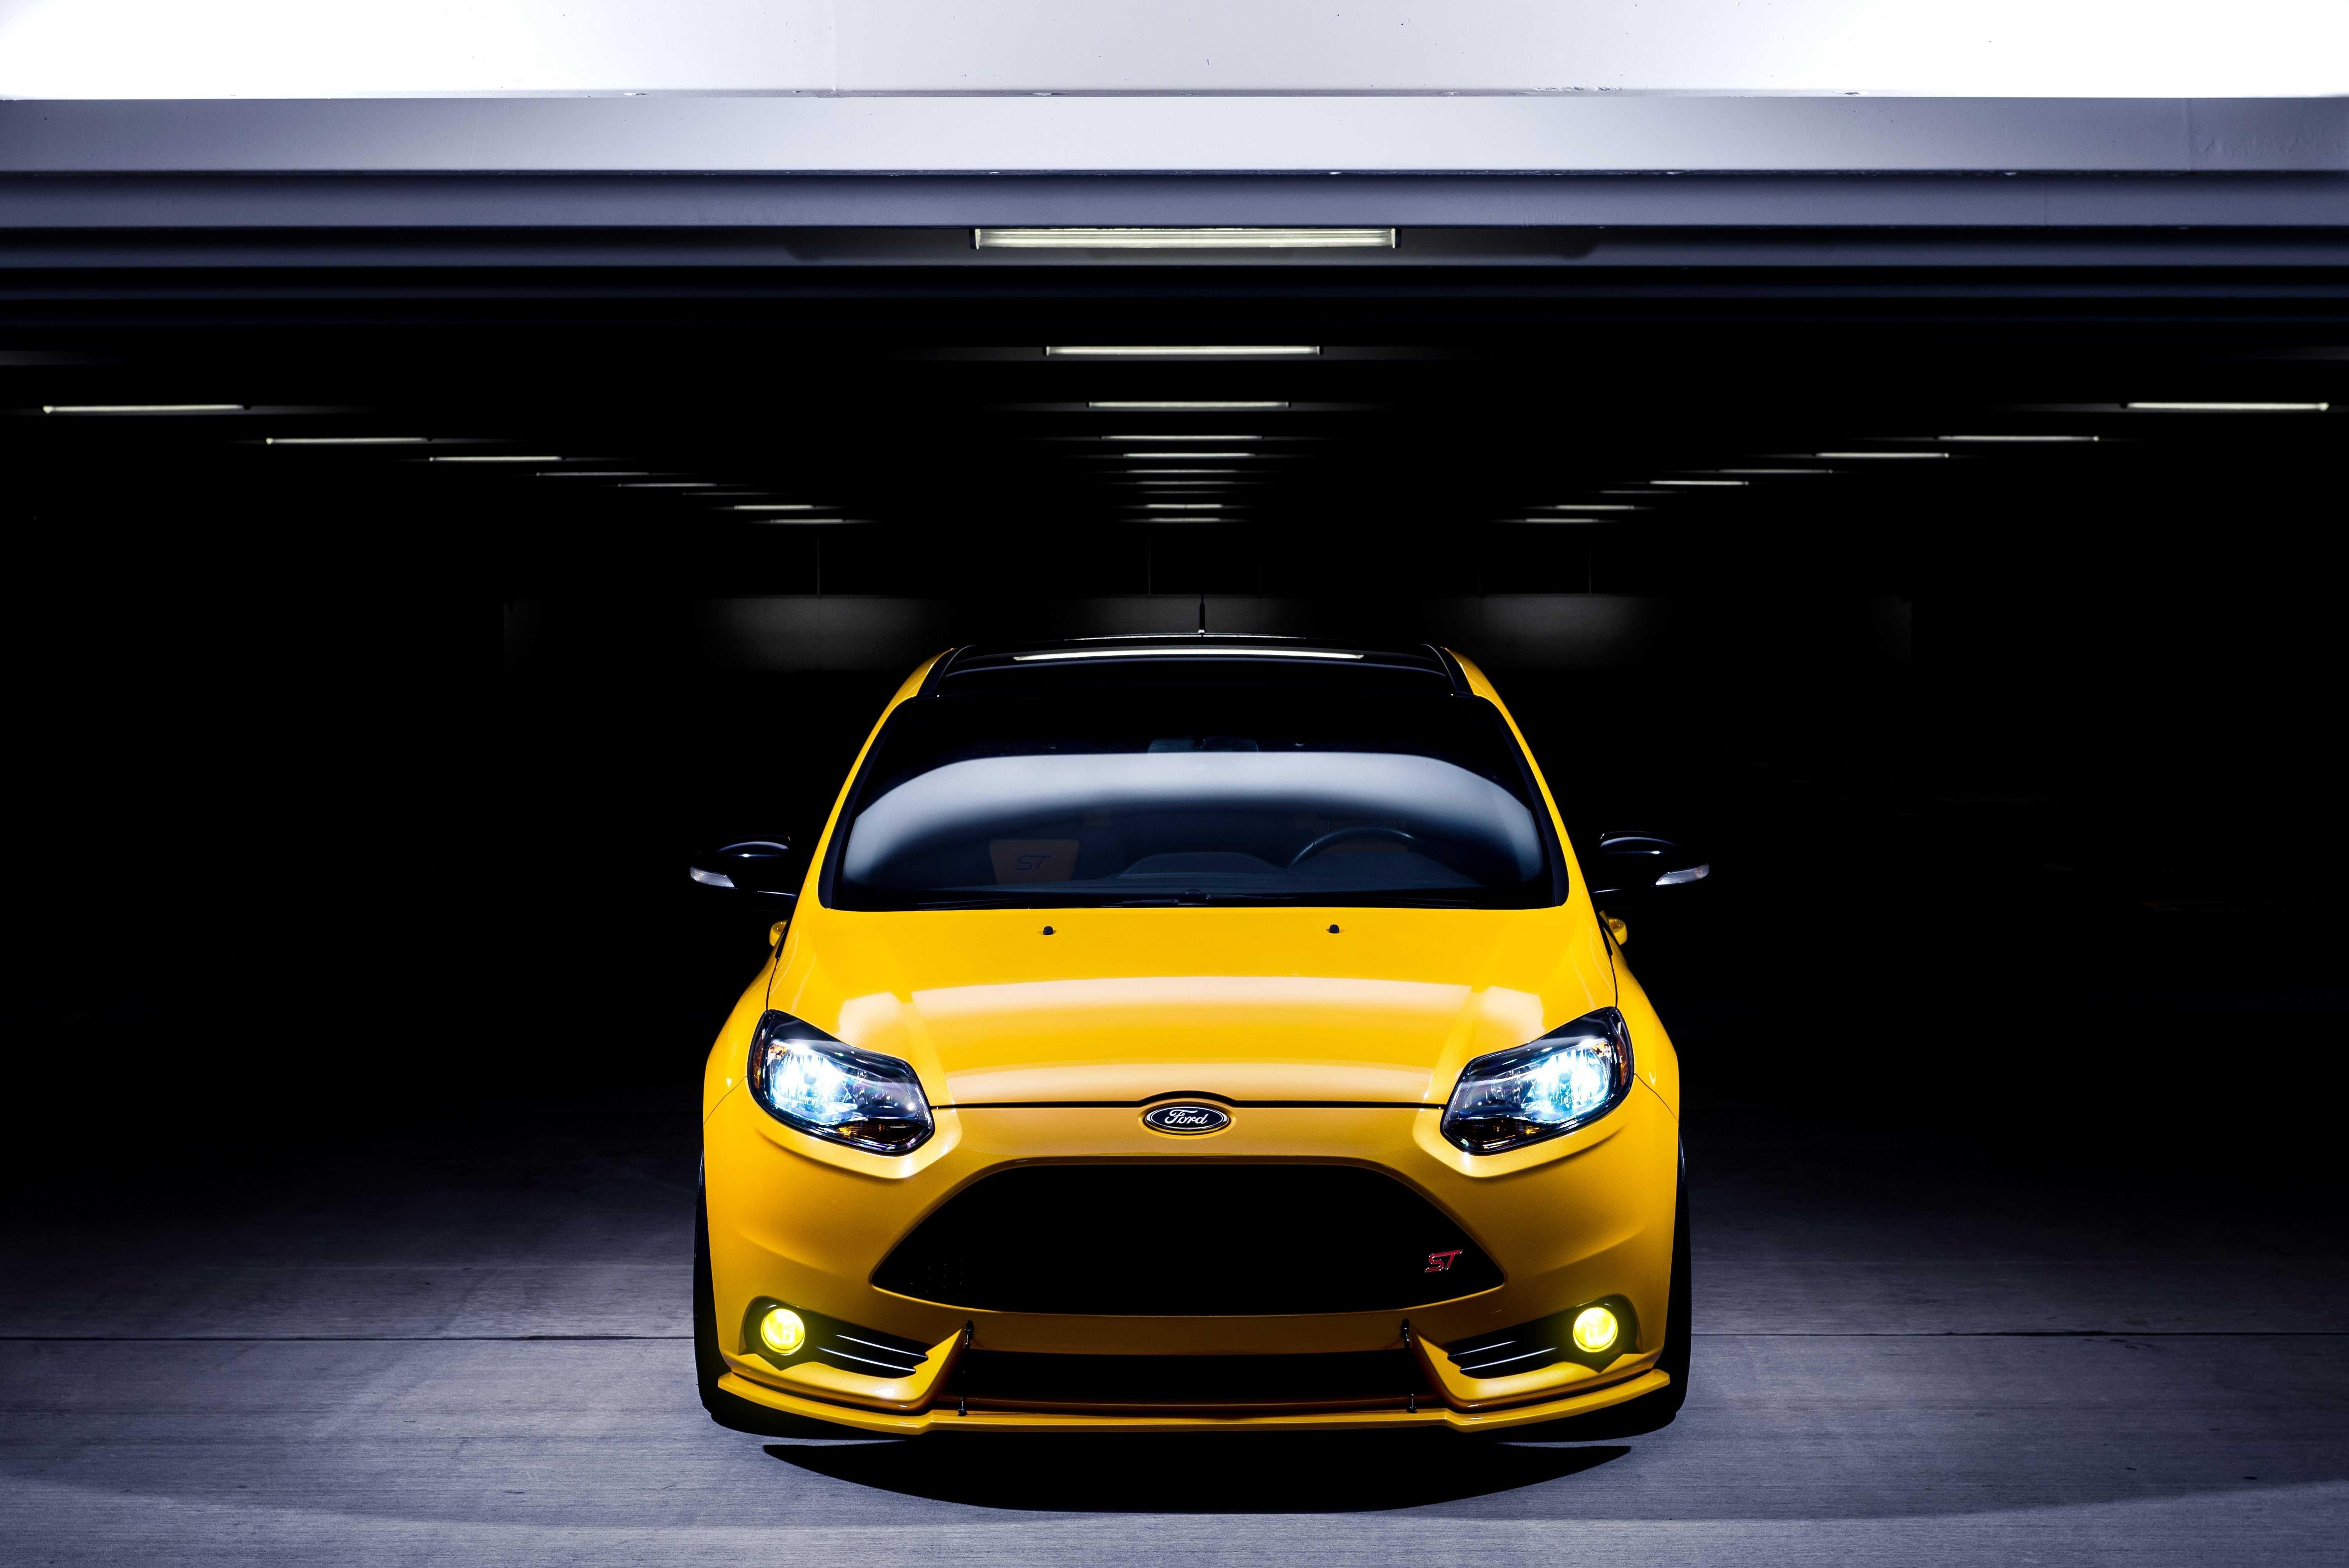 Ford Focus St Wallpapers HD Photos, Wallpapers and other Image